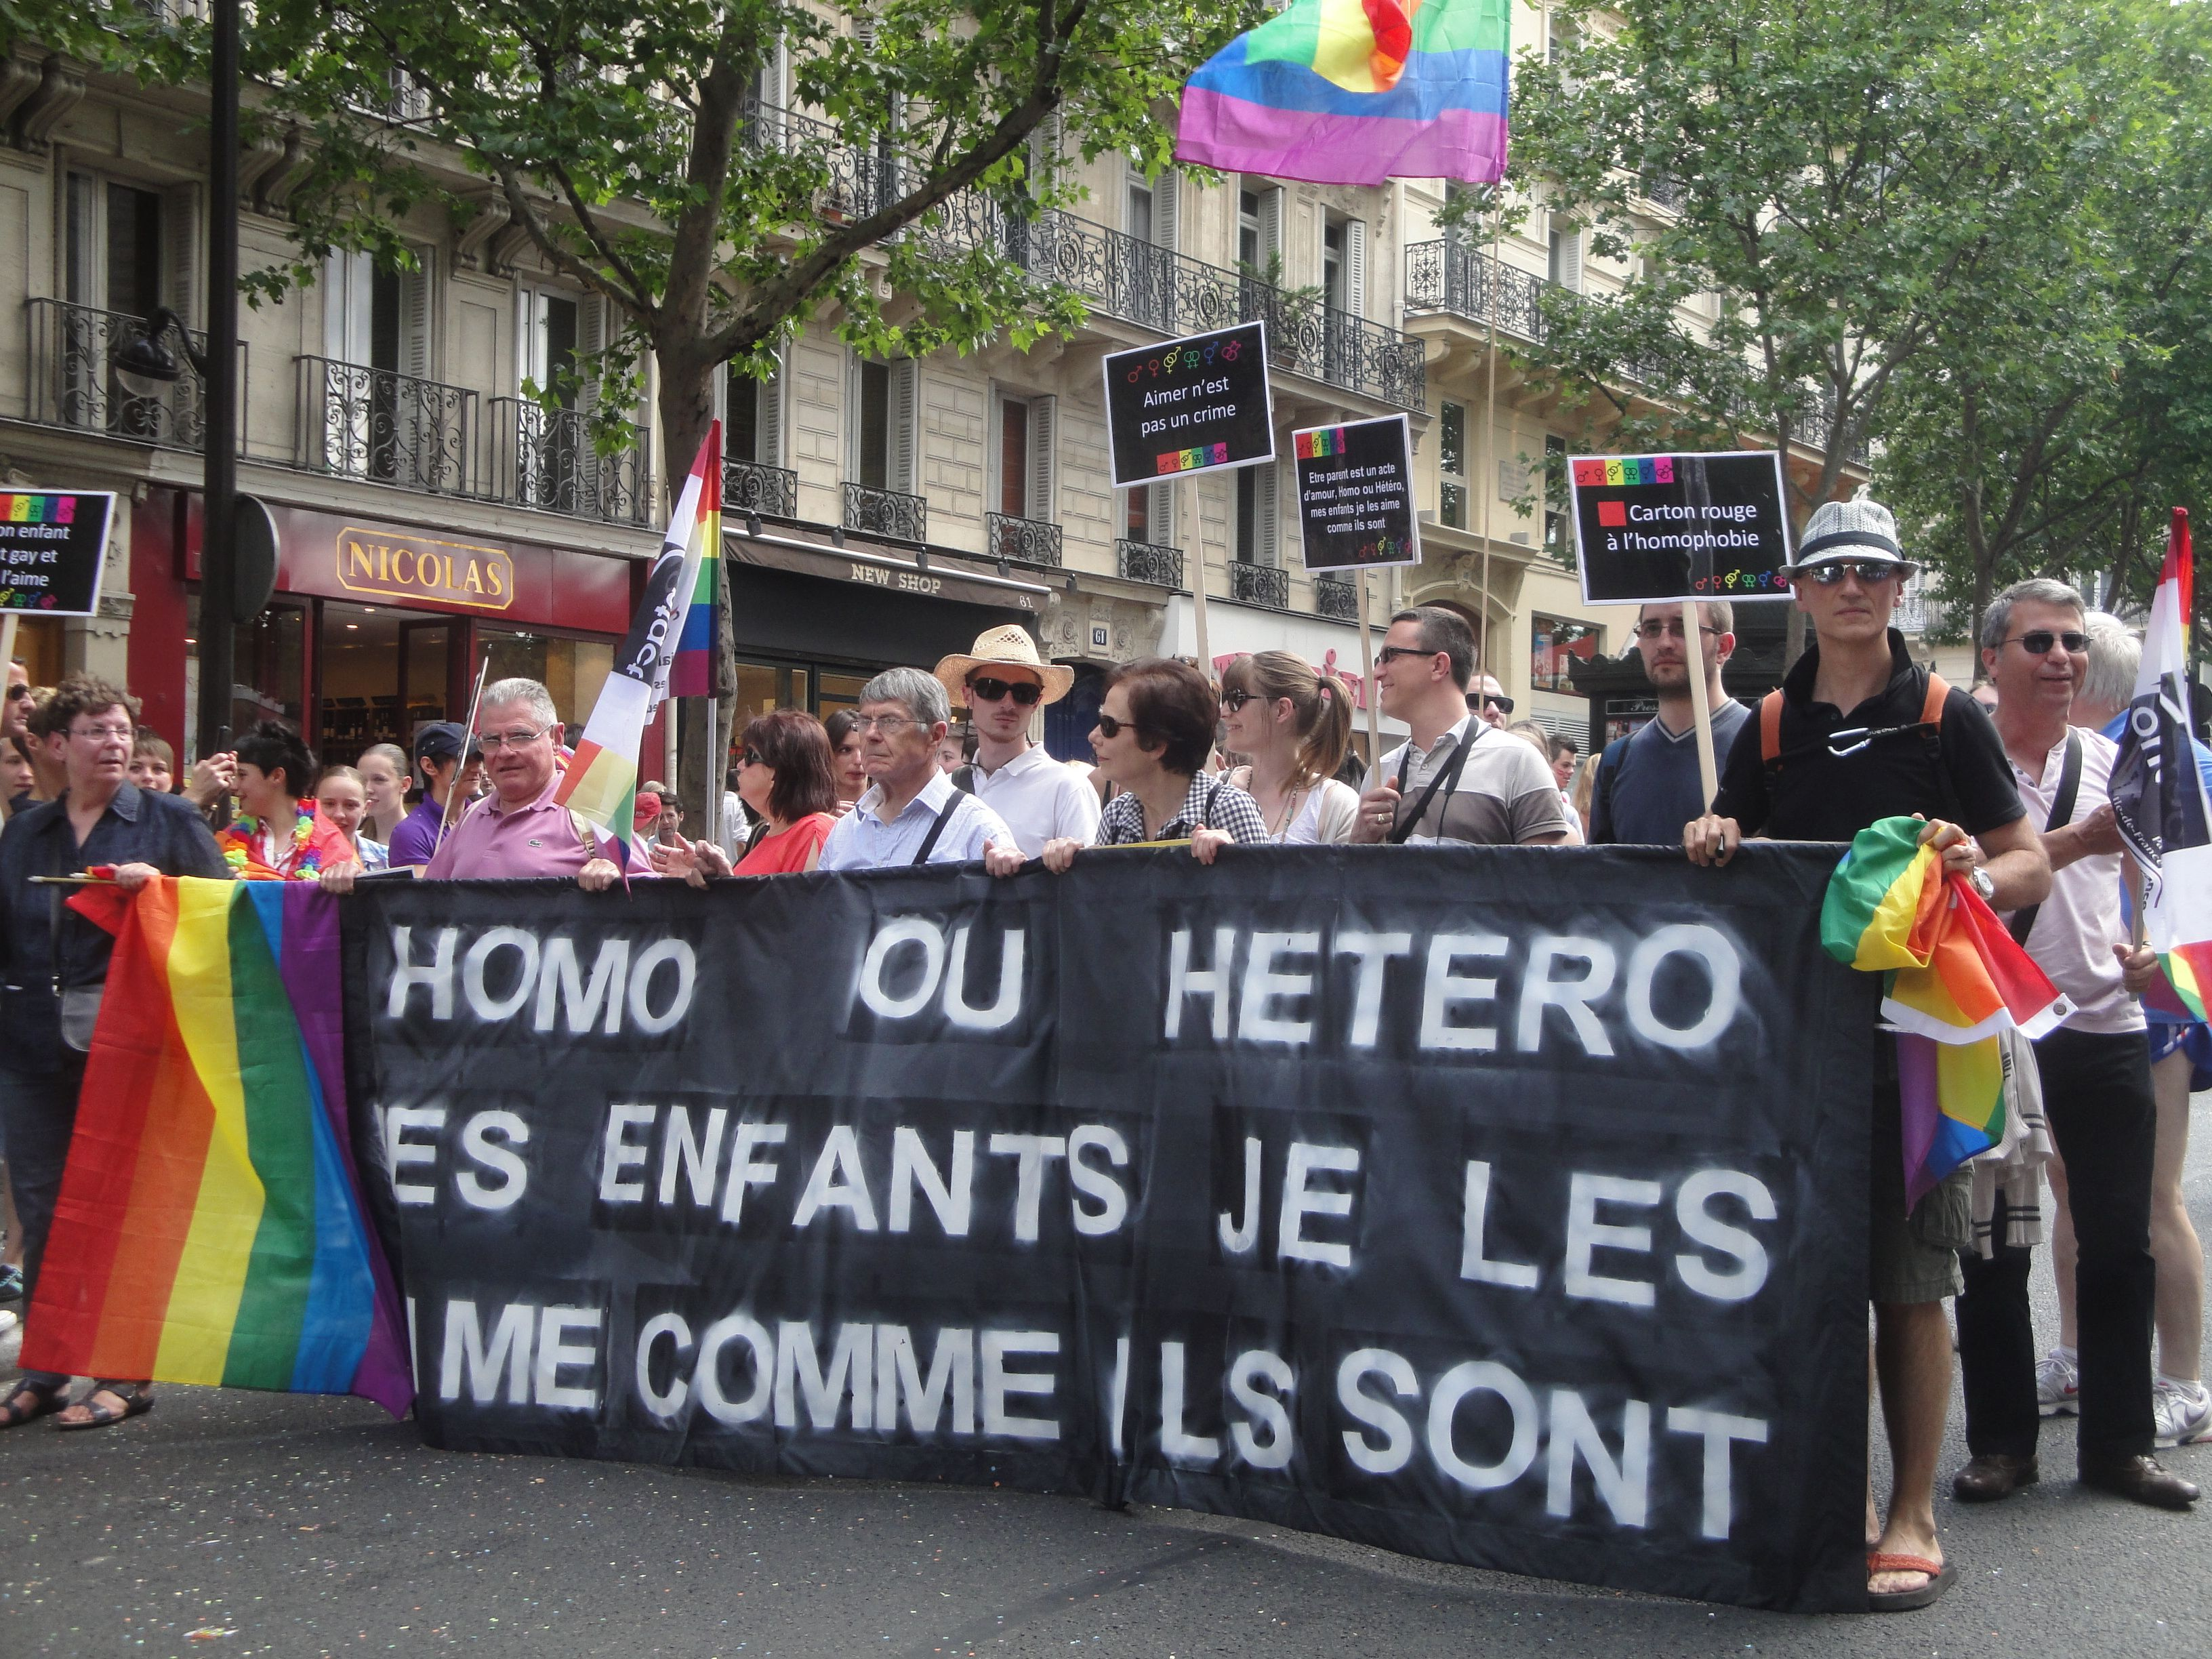 gay pride, every year